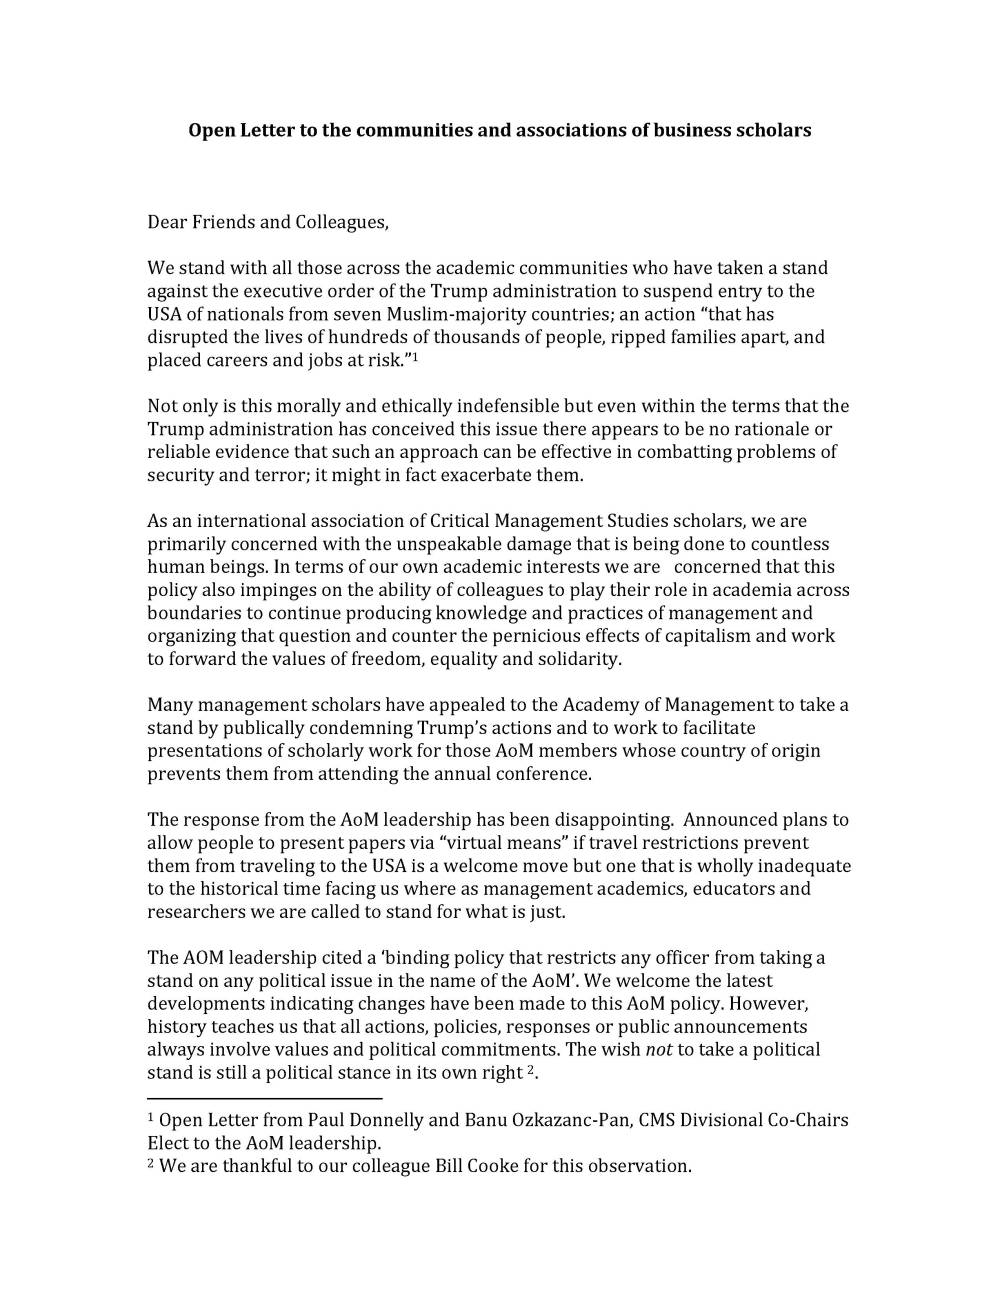 open-letter-page-1-jpg